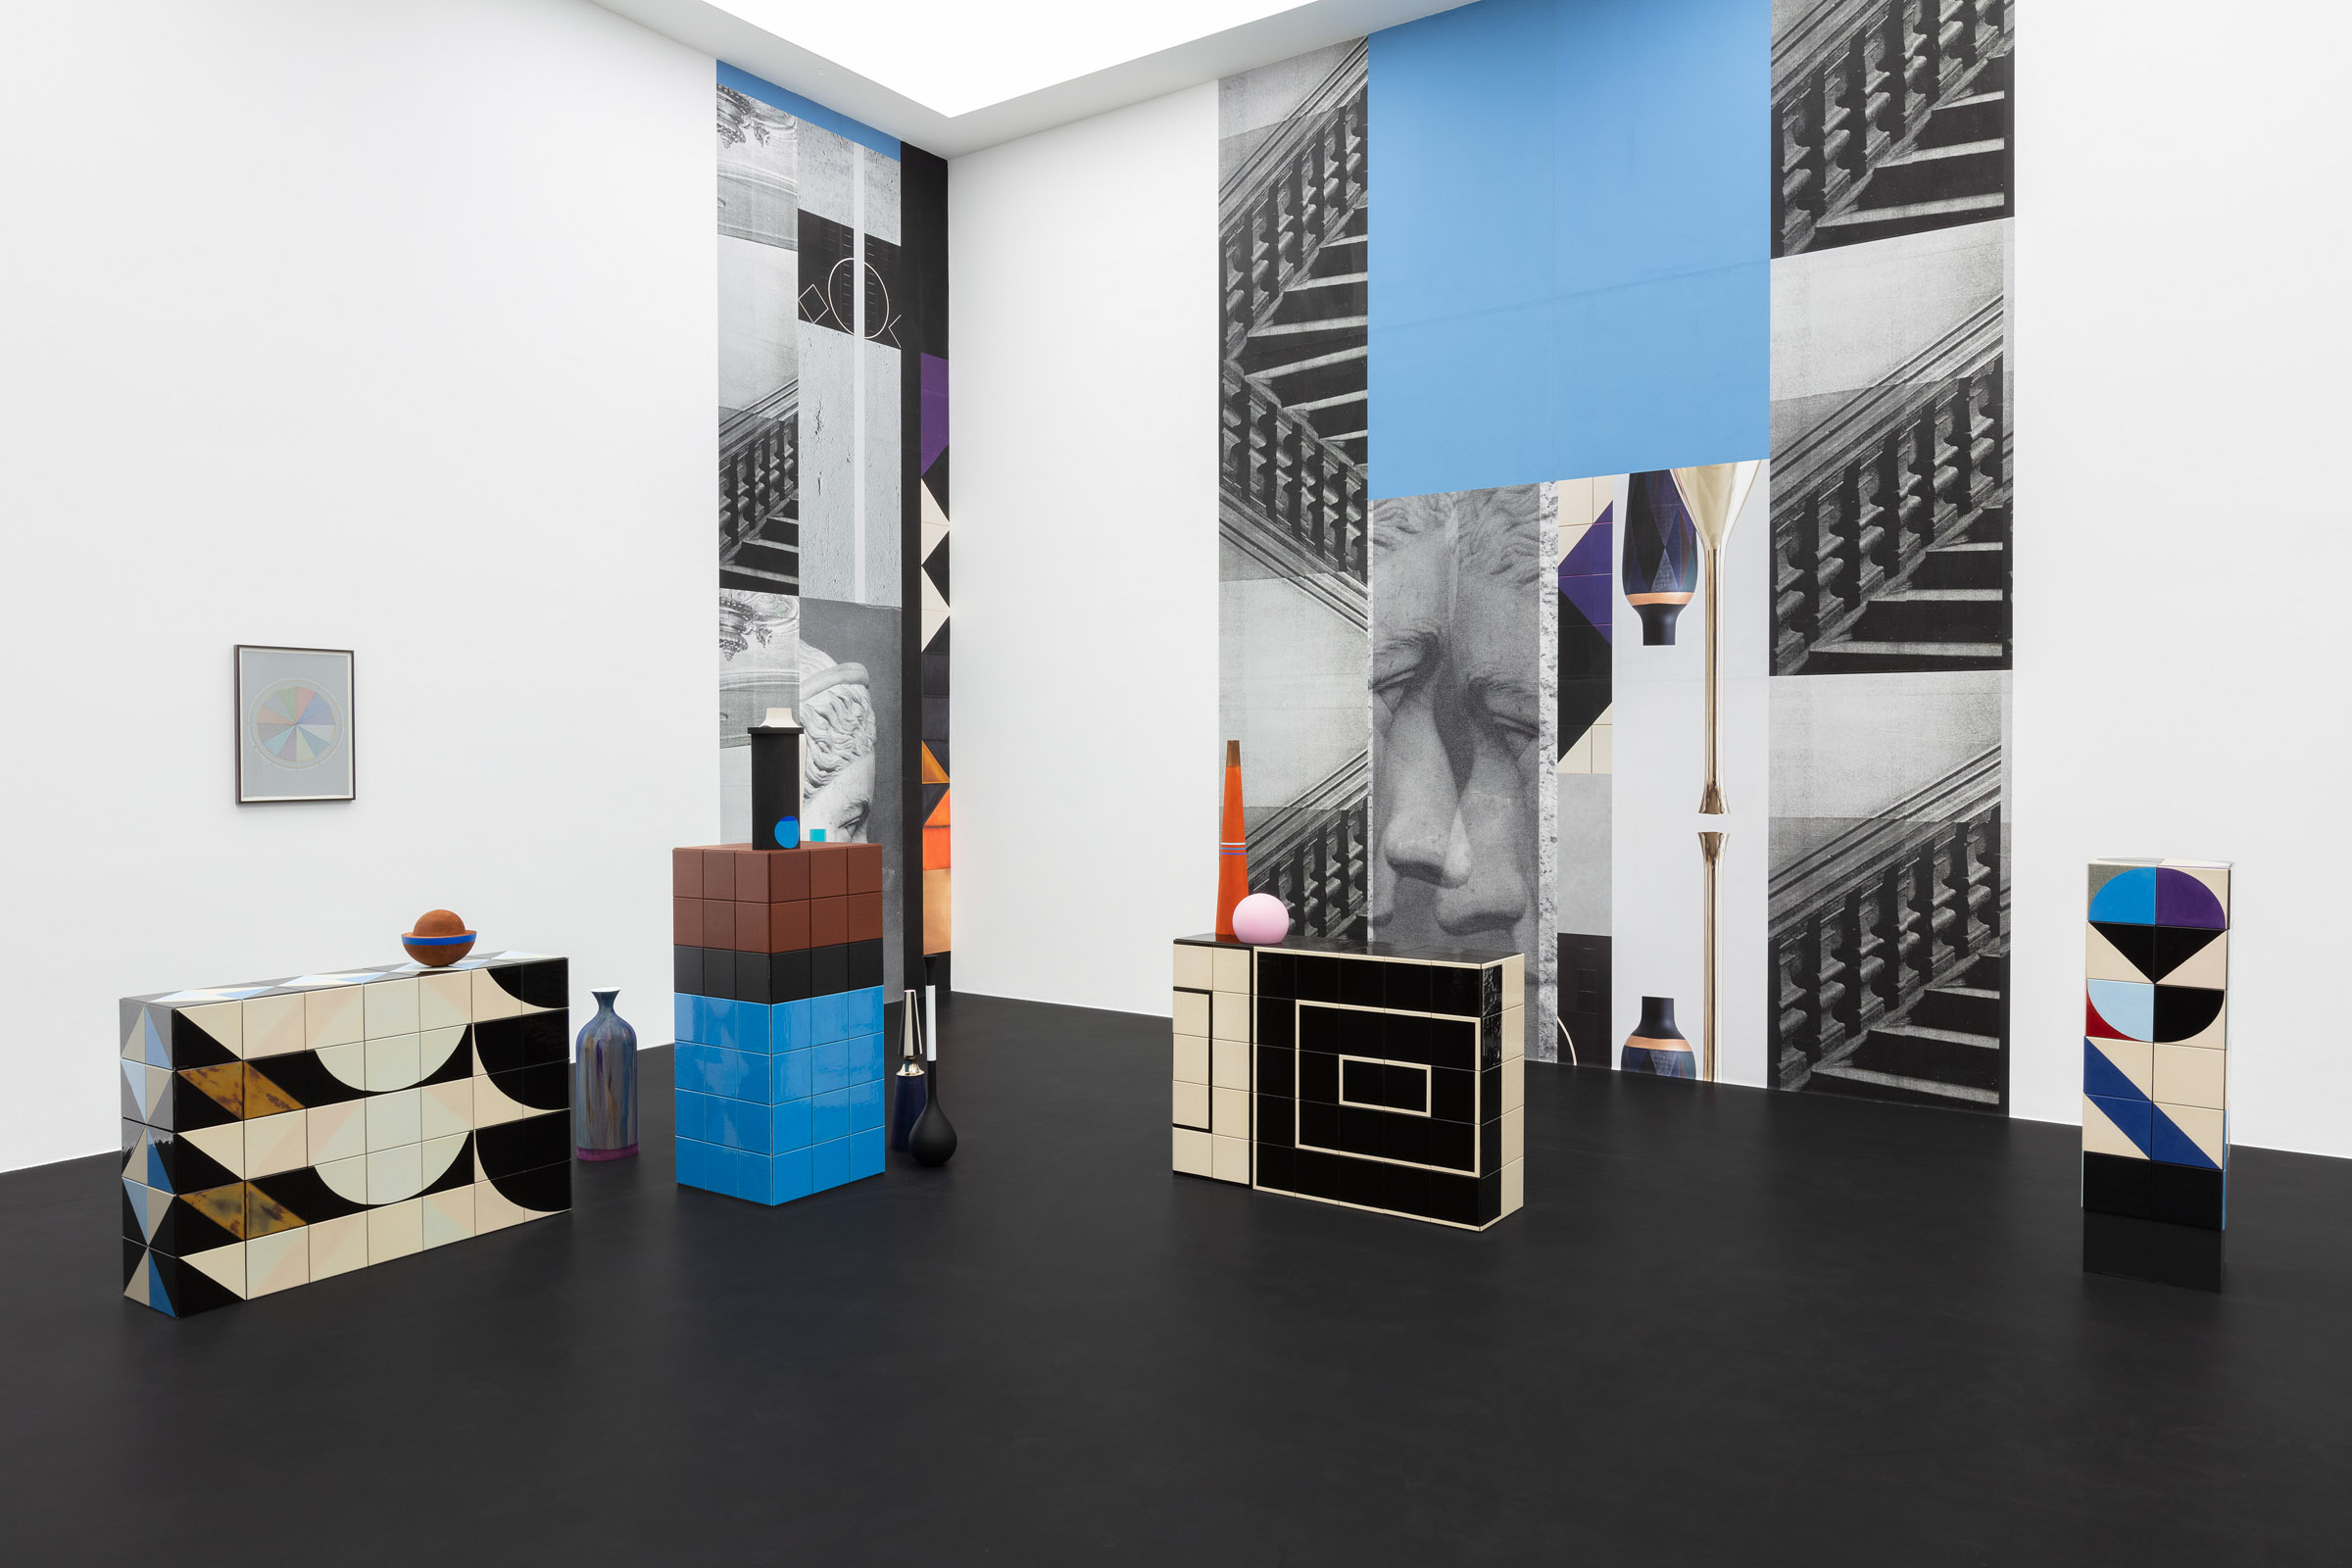 Viewing Room – Claudia Wieser in S-chanf